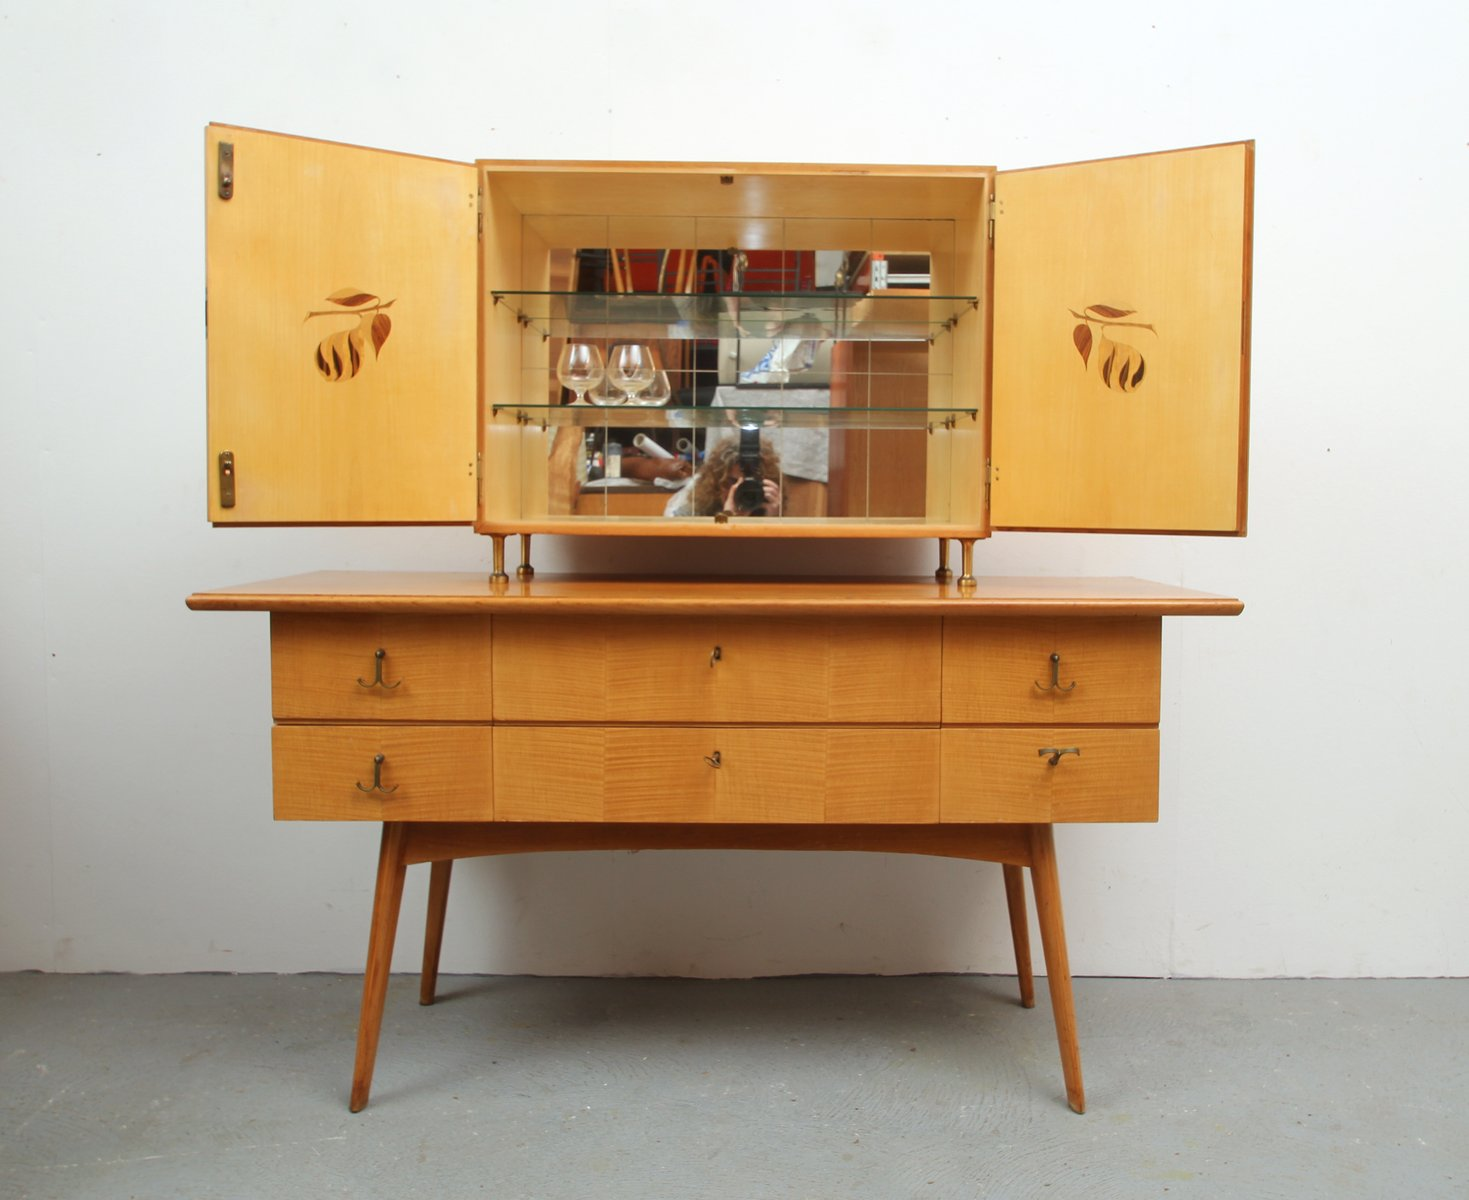 Cherry Wood Sideboard and Bar Cabinet, 1950s for sale at Pamono